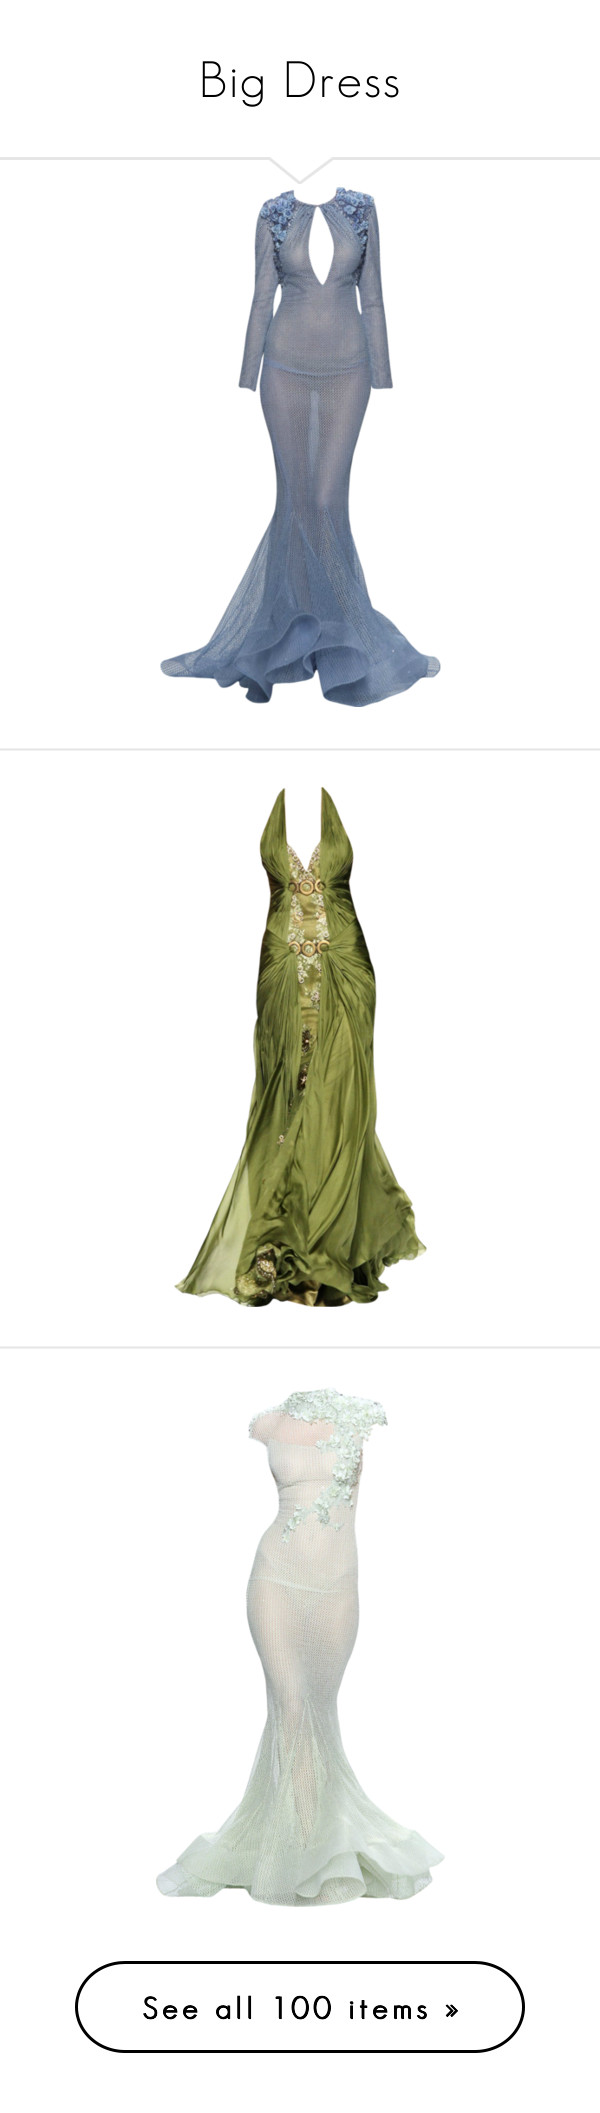 """""""Big Dress"""" by saltless ❤ liked on Polyvore featuring dresses, gowns, long dresses, edits, blue ball gown, blue evening dresses, long blue dress, blue gown, blue dress and green"""